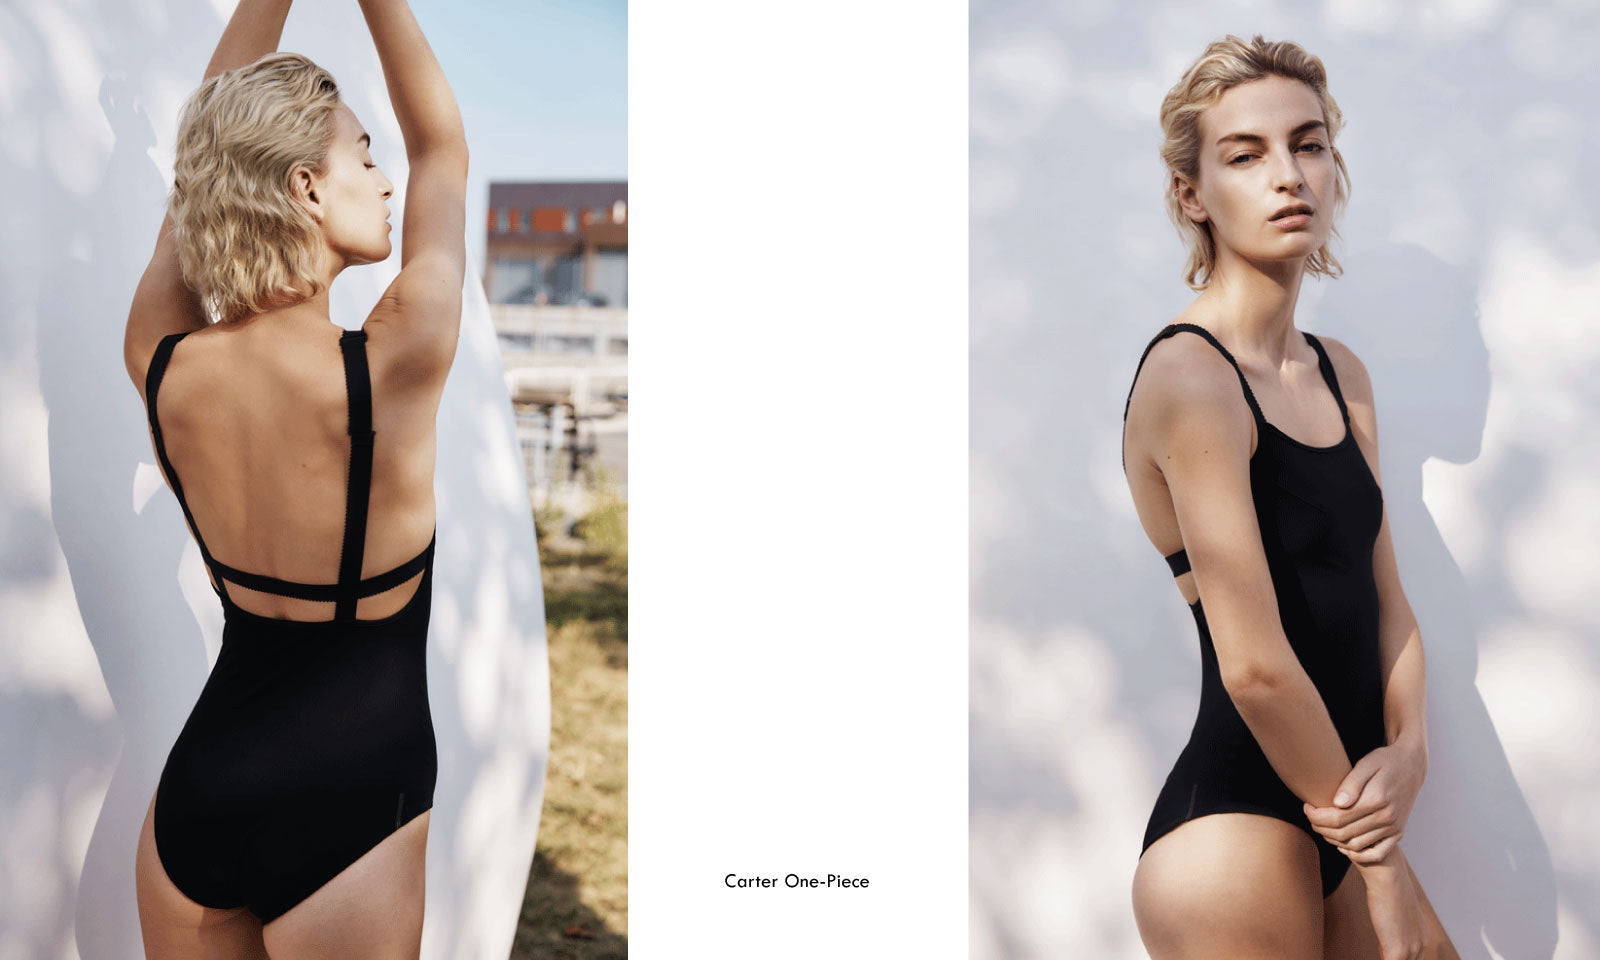 Carter One-Piece